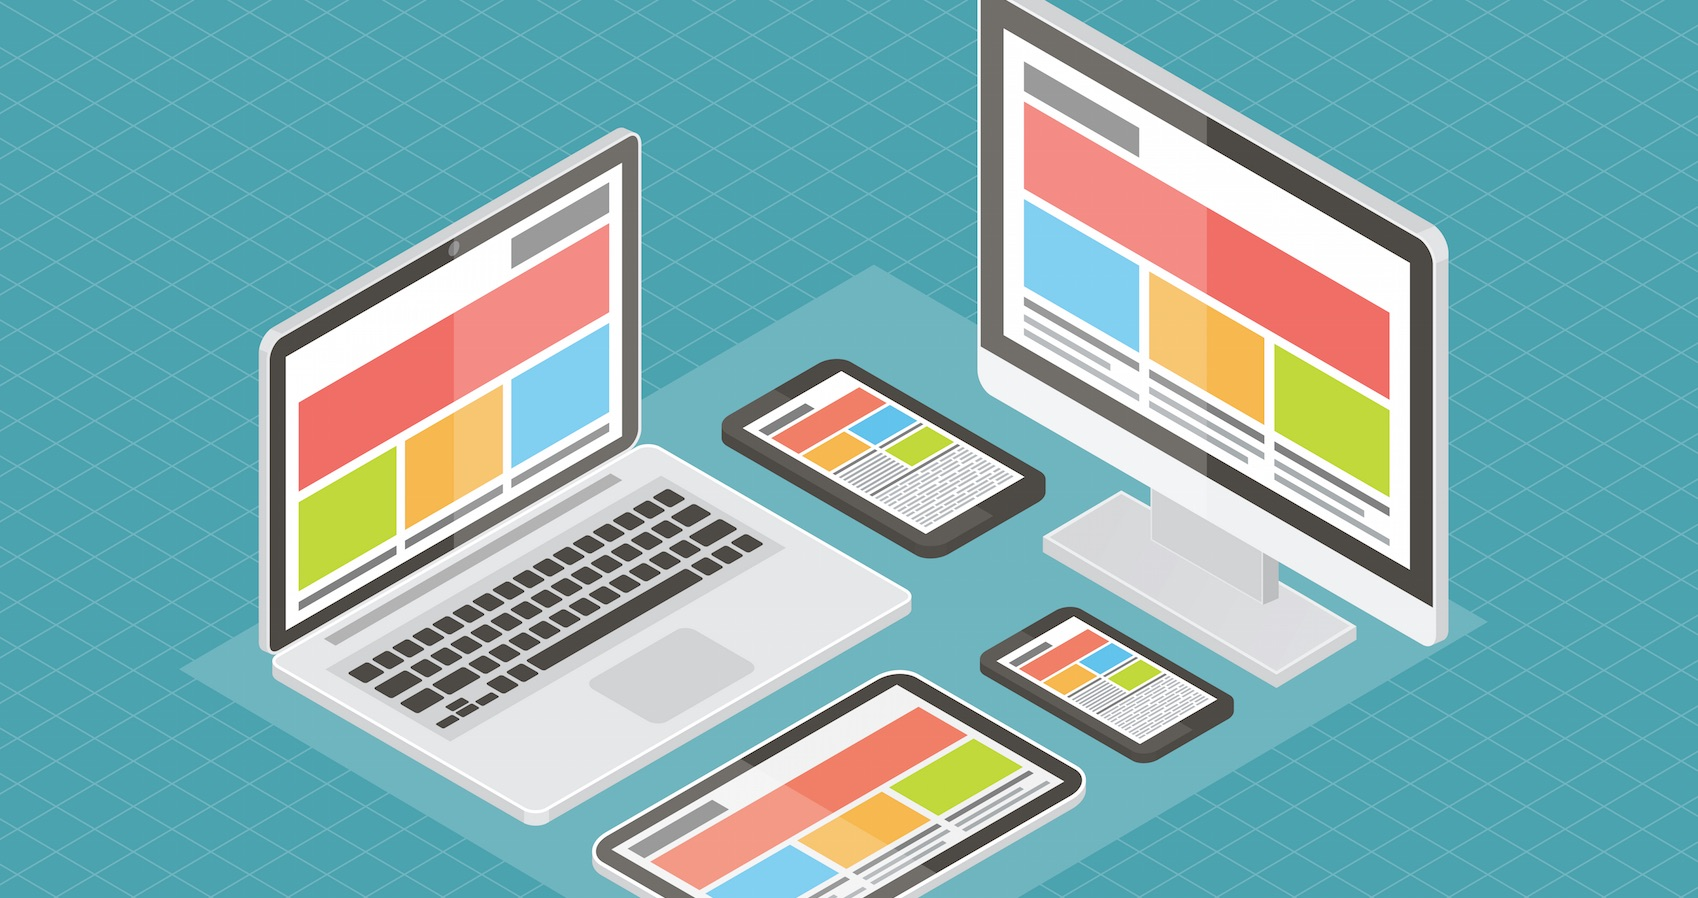 Importance-Of-A-Responsive-Web-Design-In-The-Era-Of-The-Smartphones.jpg